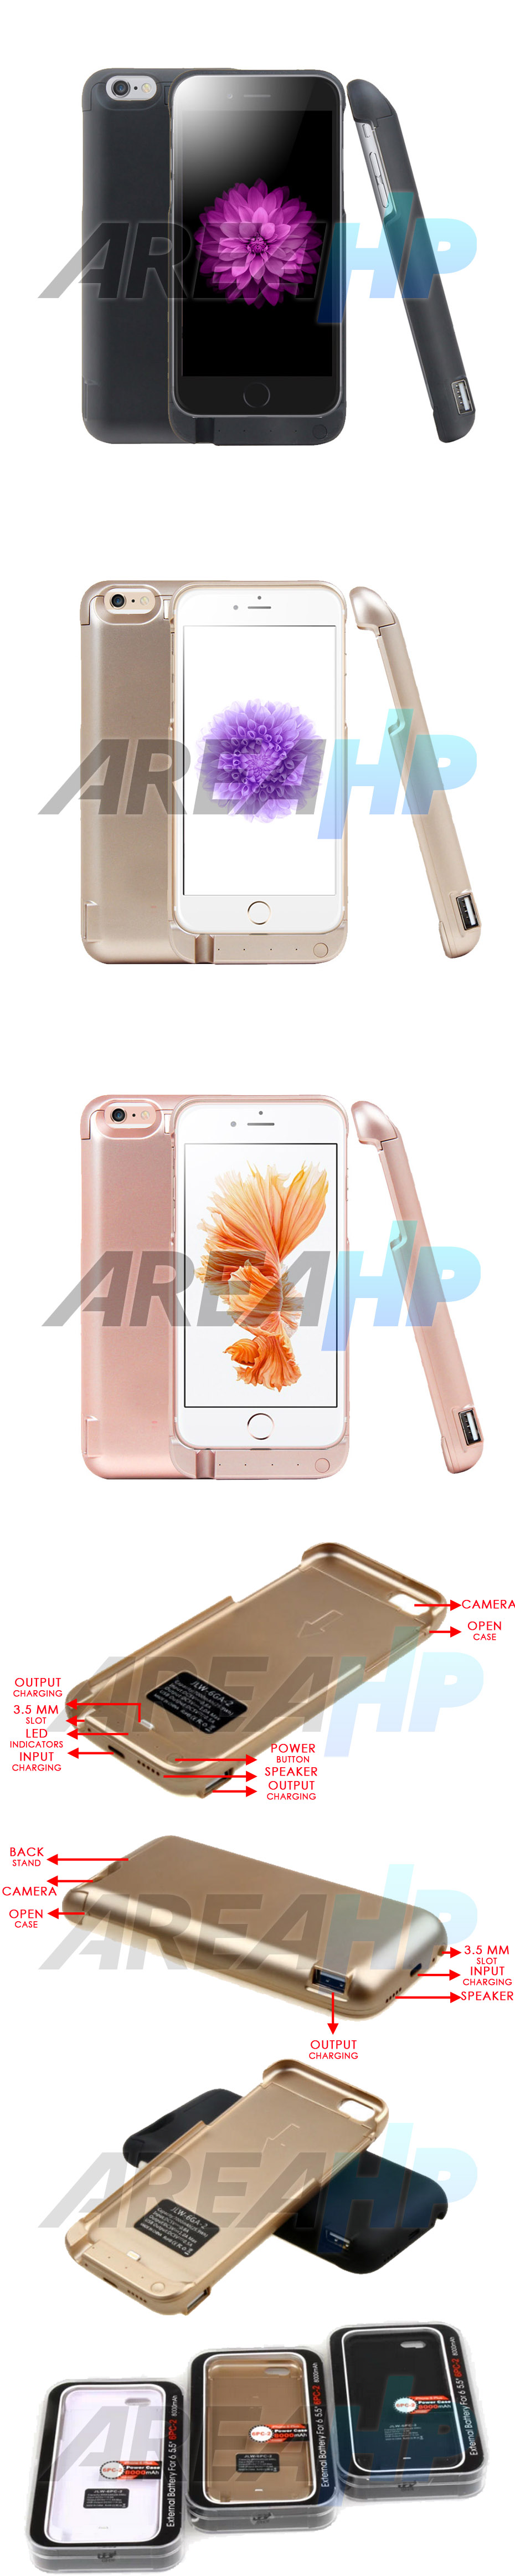 Power Case 8000mAh For iPhone 6 Plus, 6S Plus + Overview